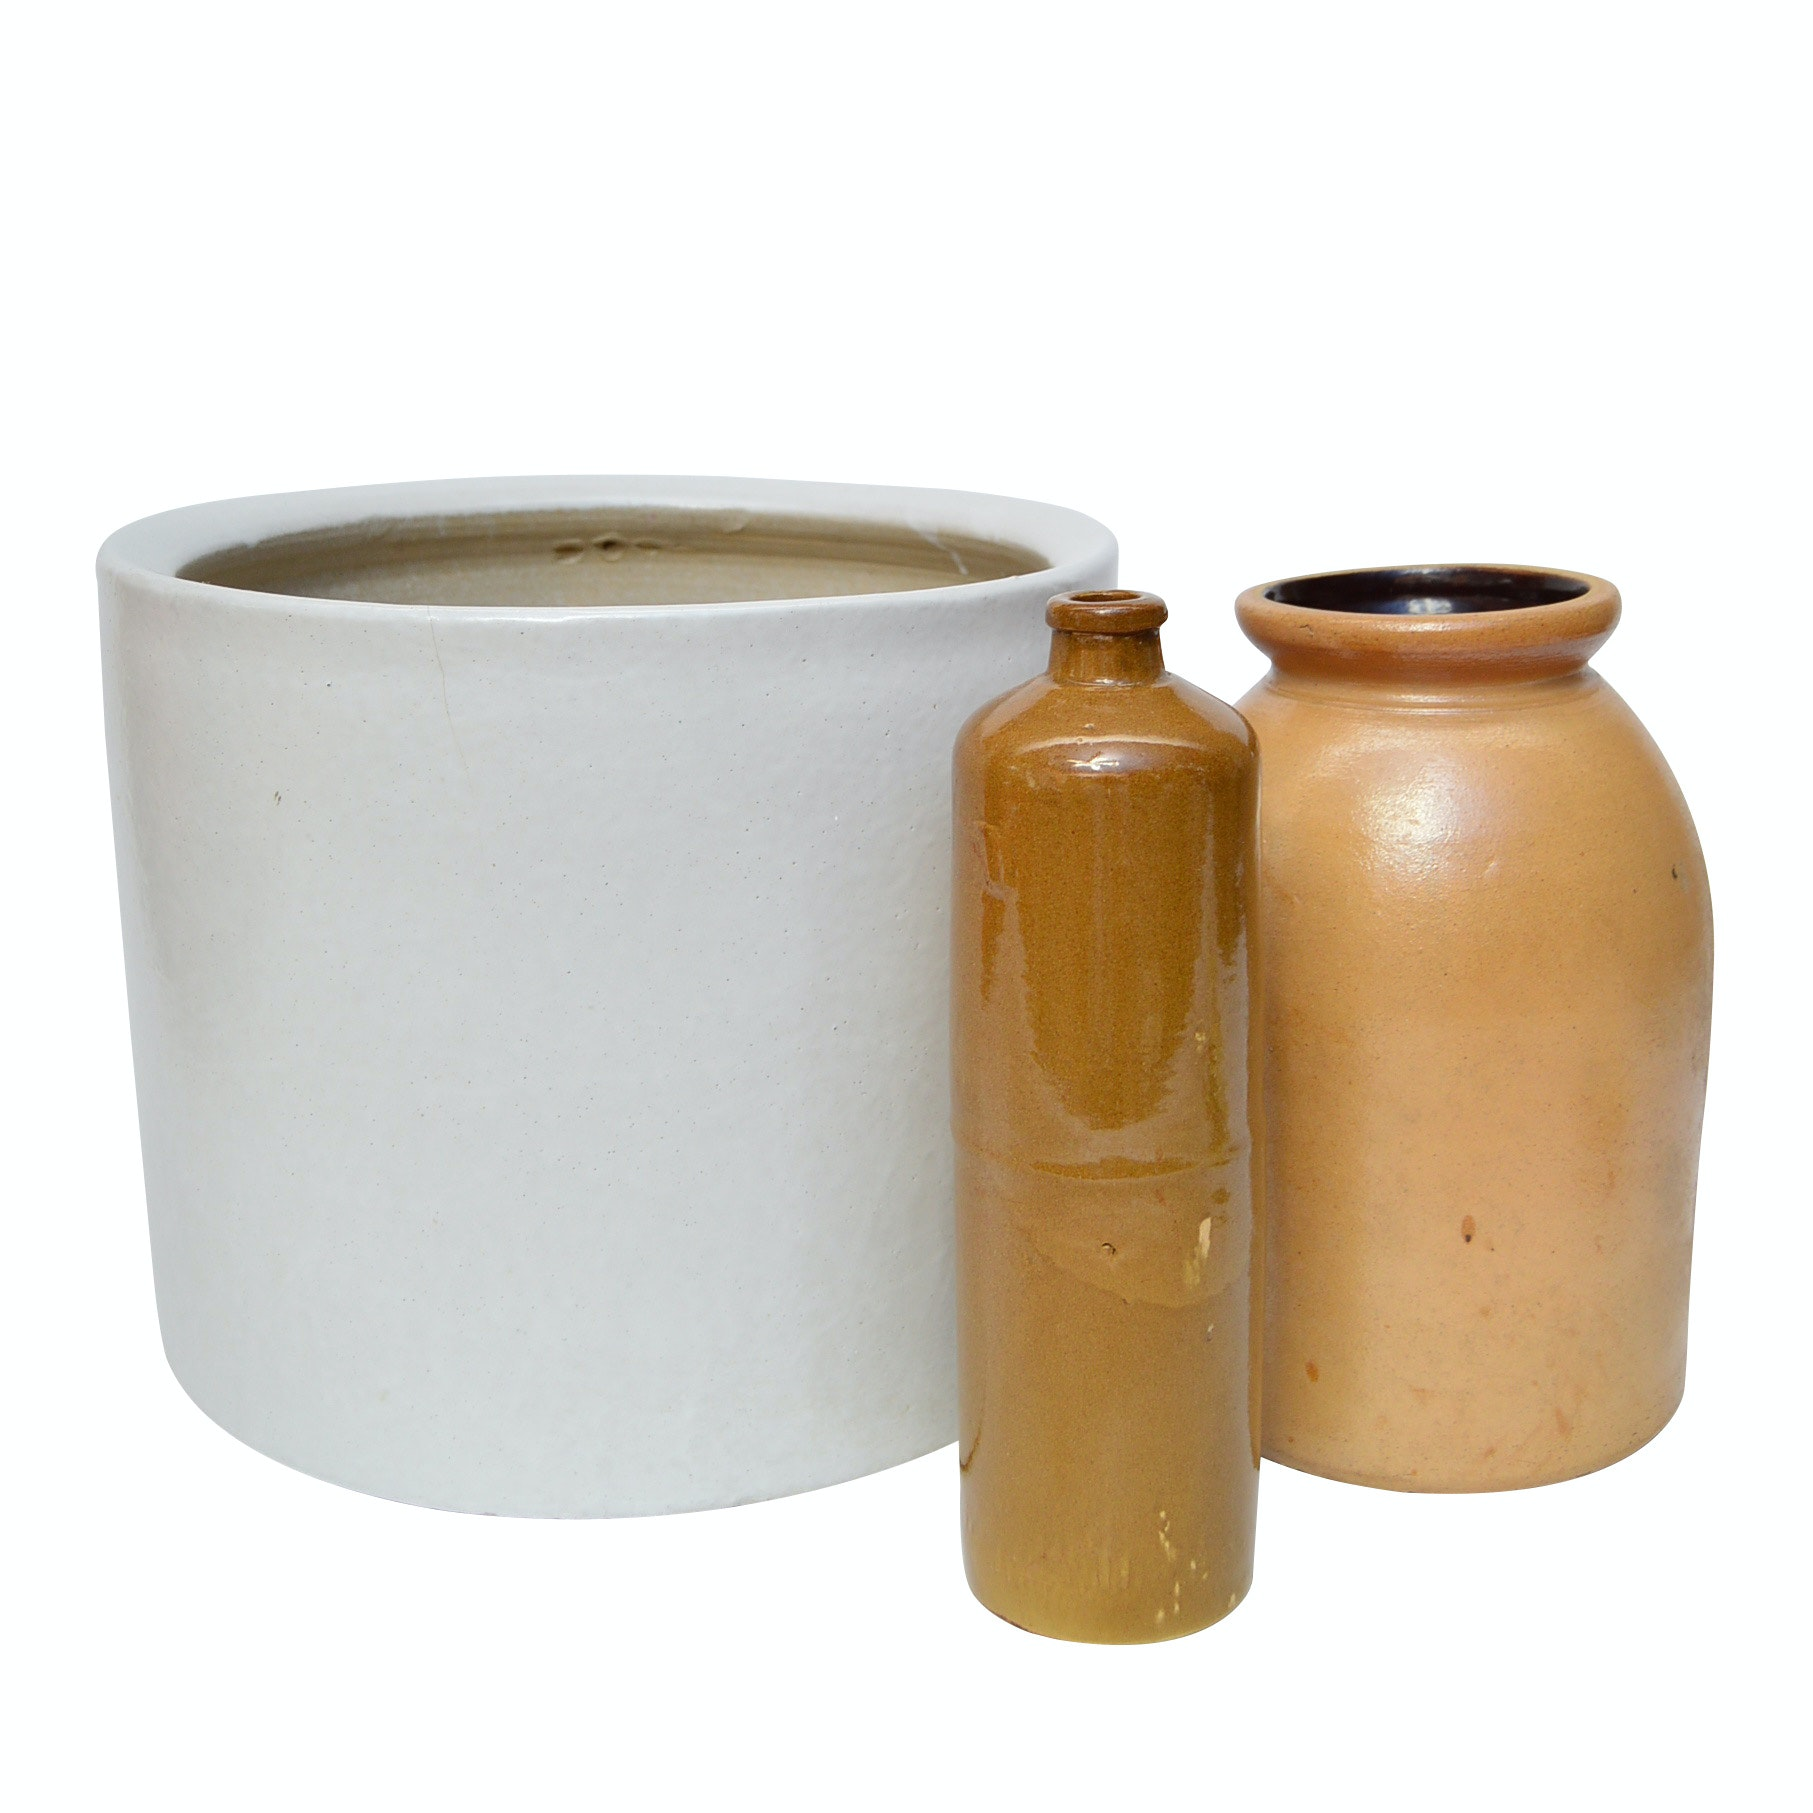 Stoneware Crock with Fermentation Jar and Stoneware Mineral Water Bottle